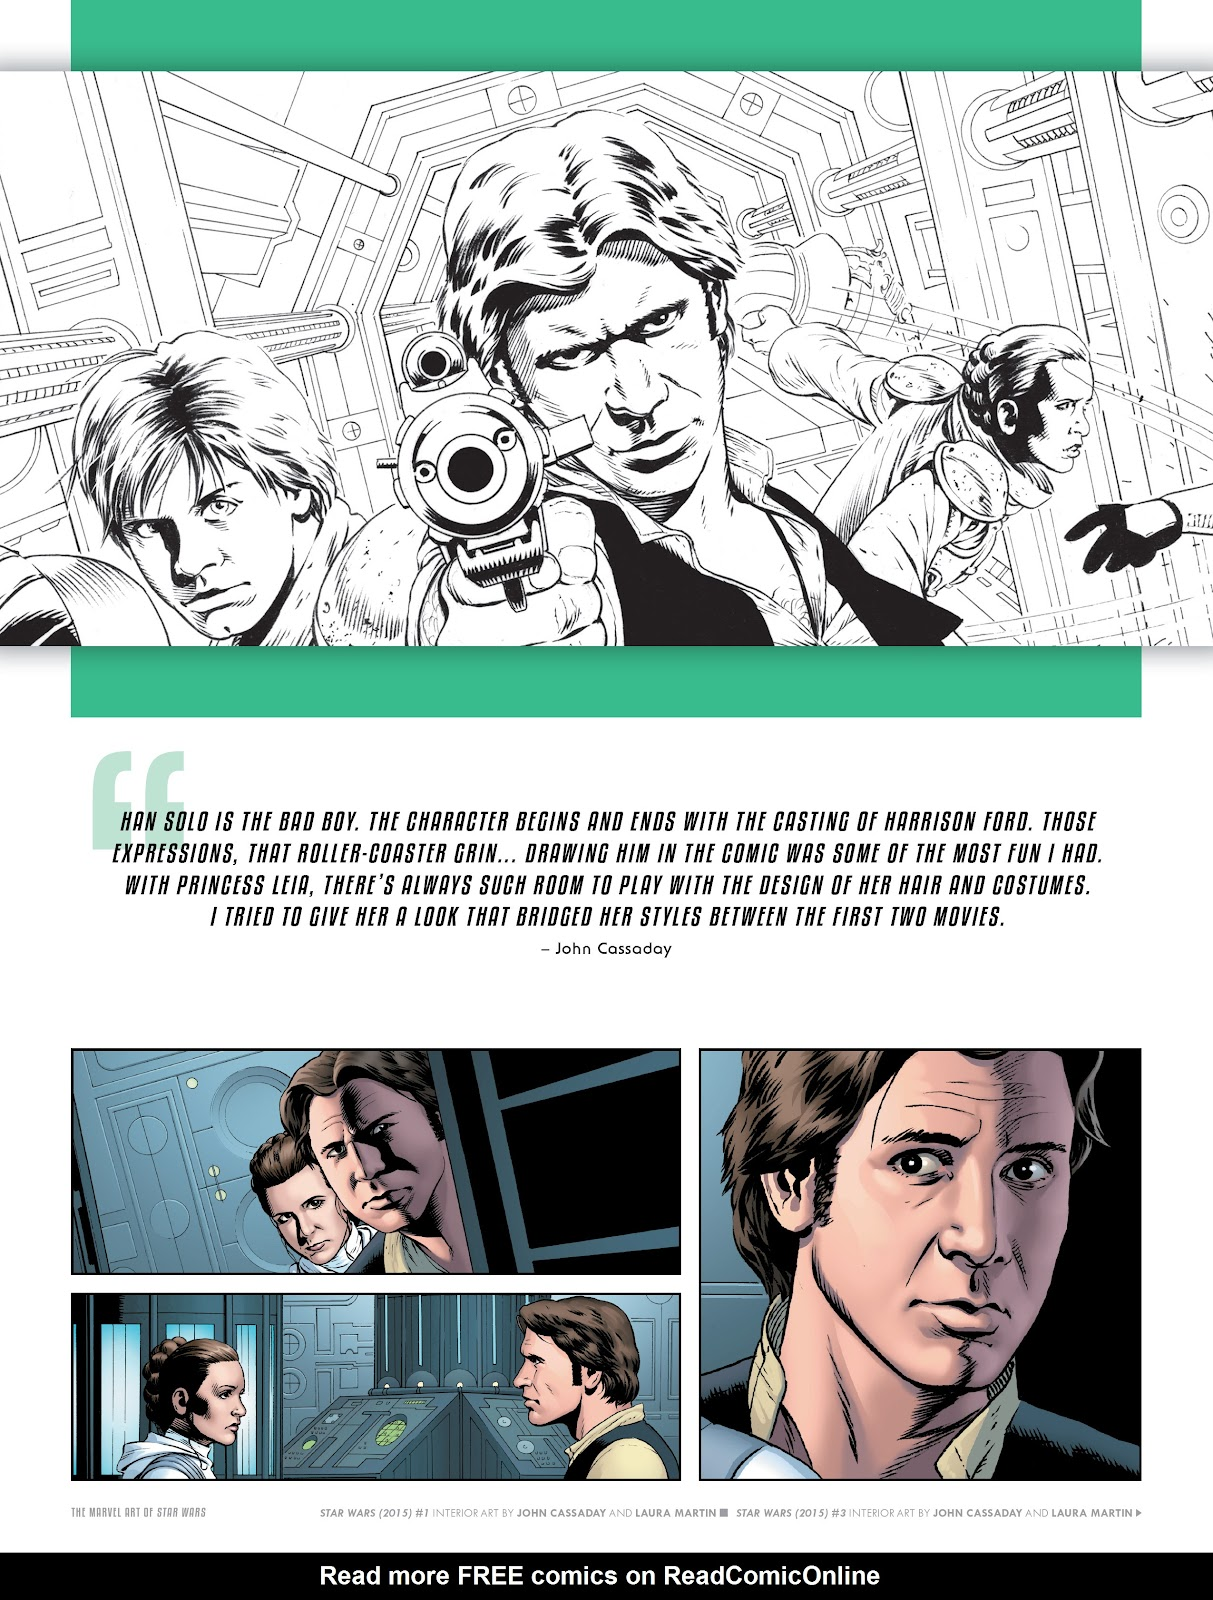 Read online The Marvel Art of Star Wars comic -  Issue # TPB (Part 1) - 23